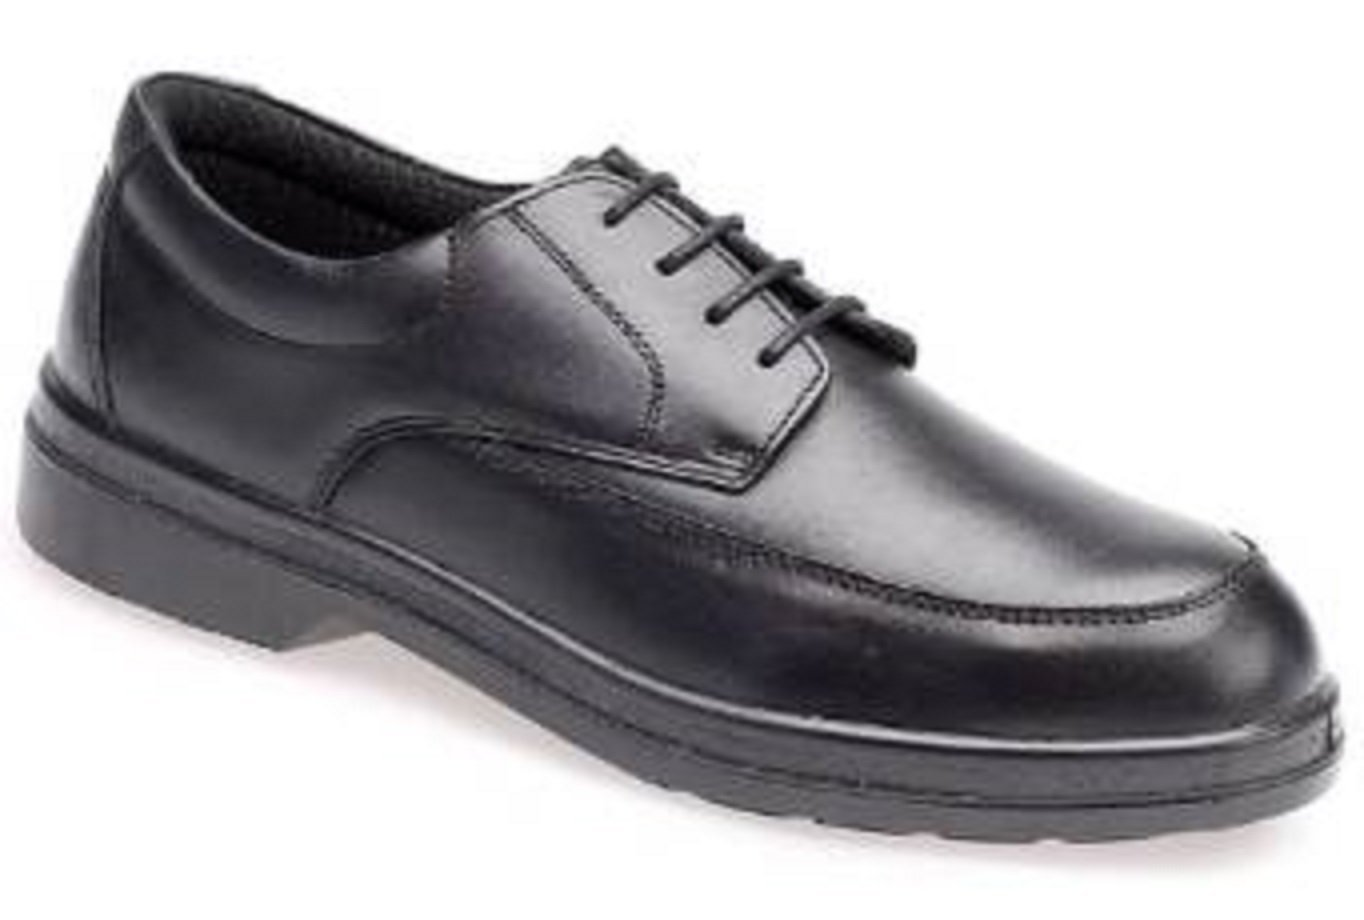 Capps Men's LH700 High Quality Leather Mudguard Safety Shoe With Comfort Lining US Size 12 Black